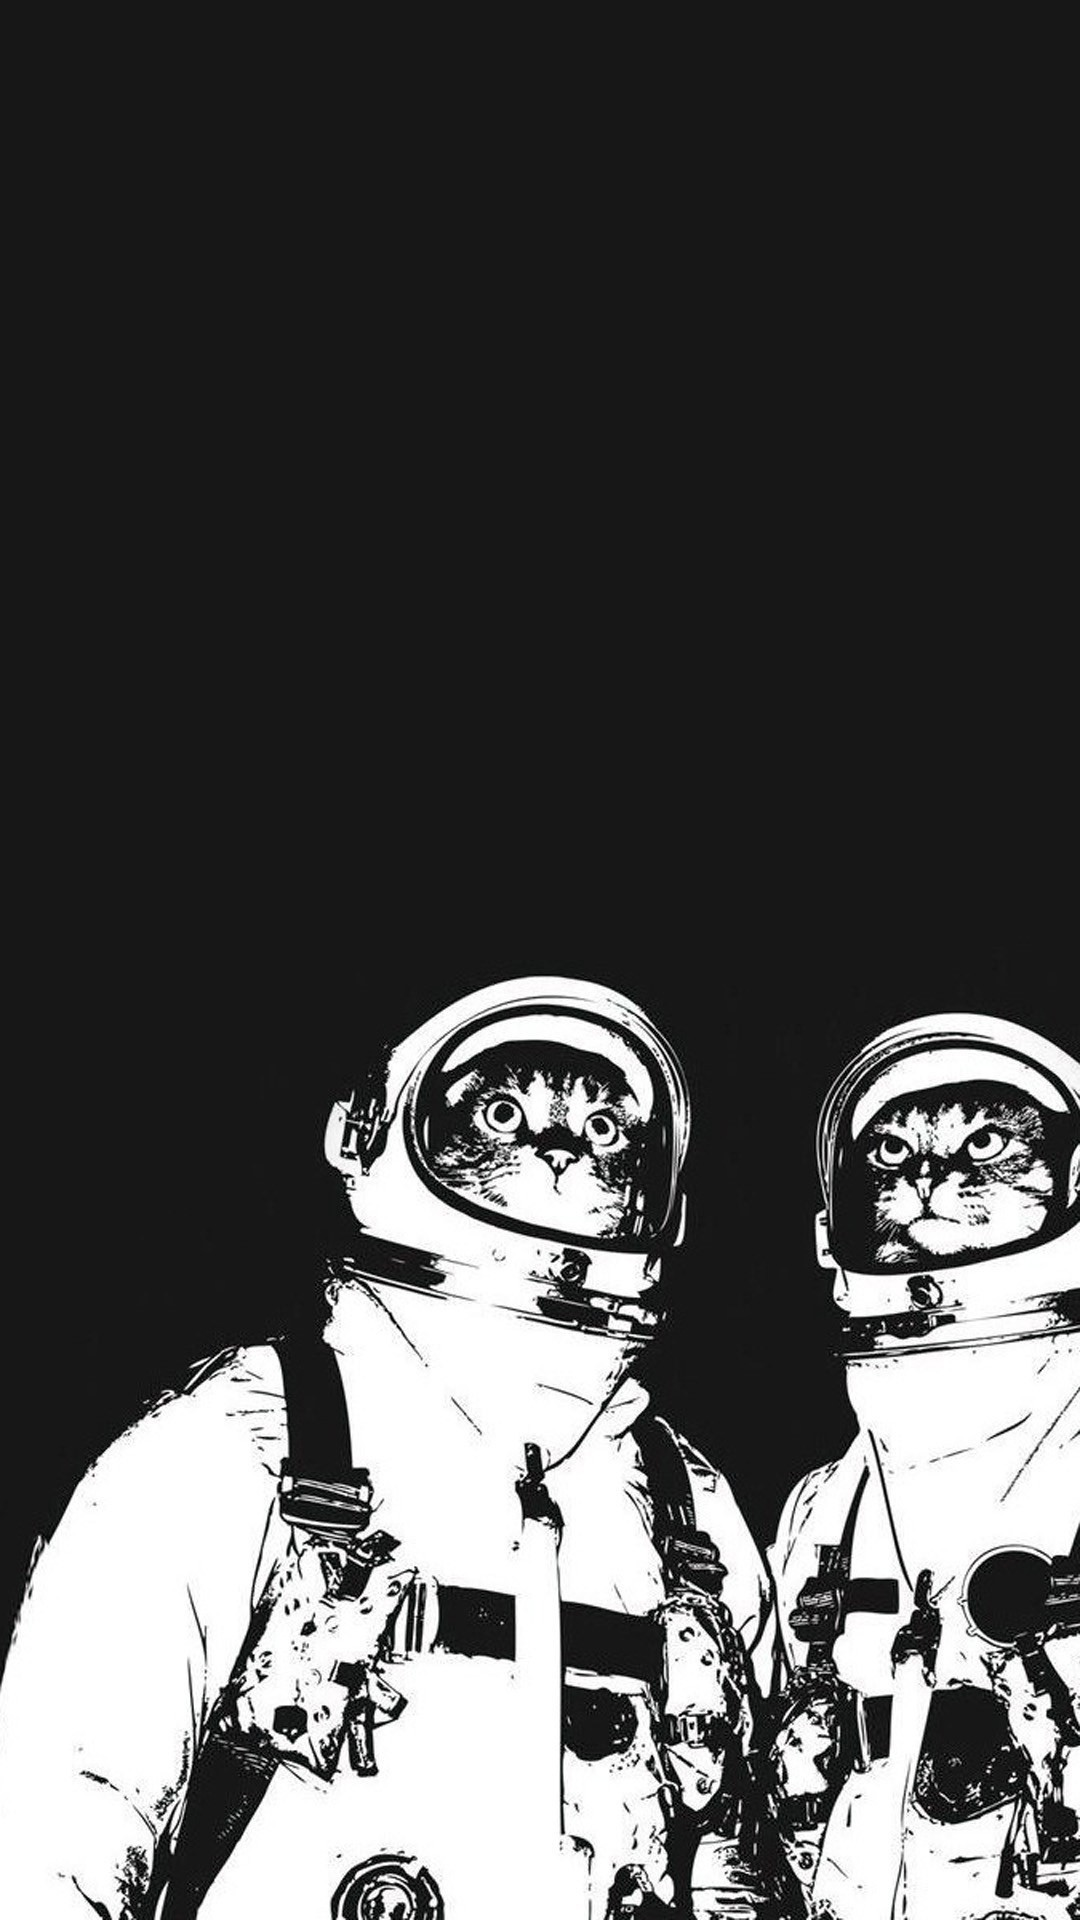 1080x1920 Supreme Girl Wallpaper Drawing Astronaut Iphone Background Hd Pixelstalk  Net. Astronaut Iphone Background Hd Pixelstalk Net